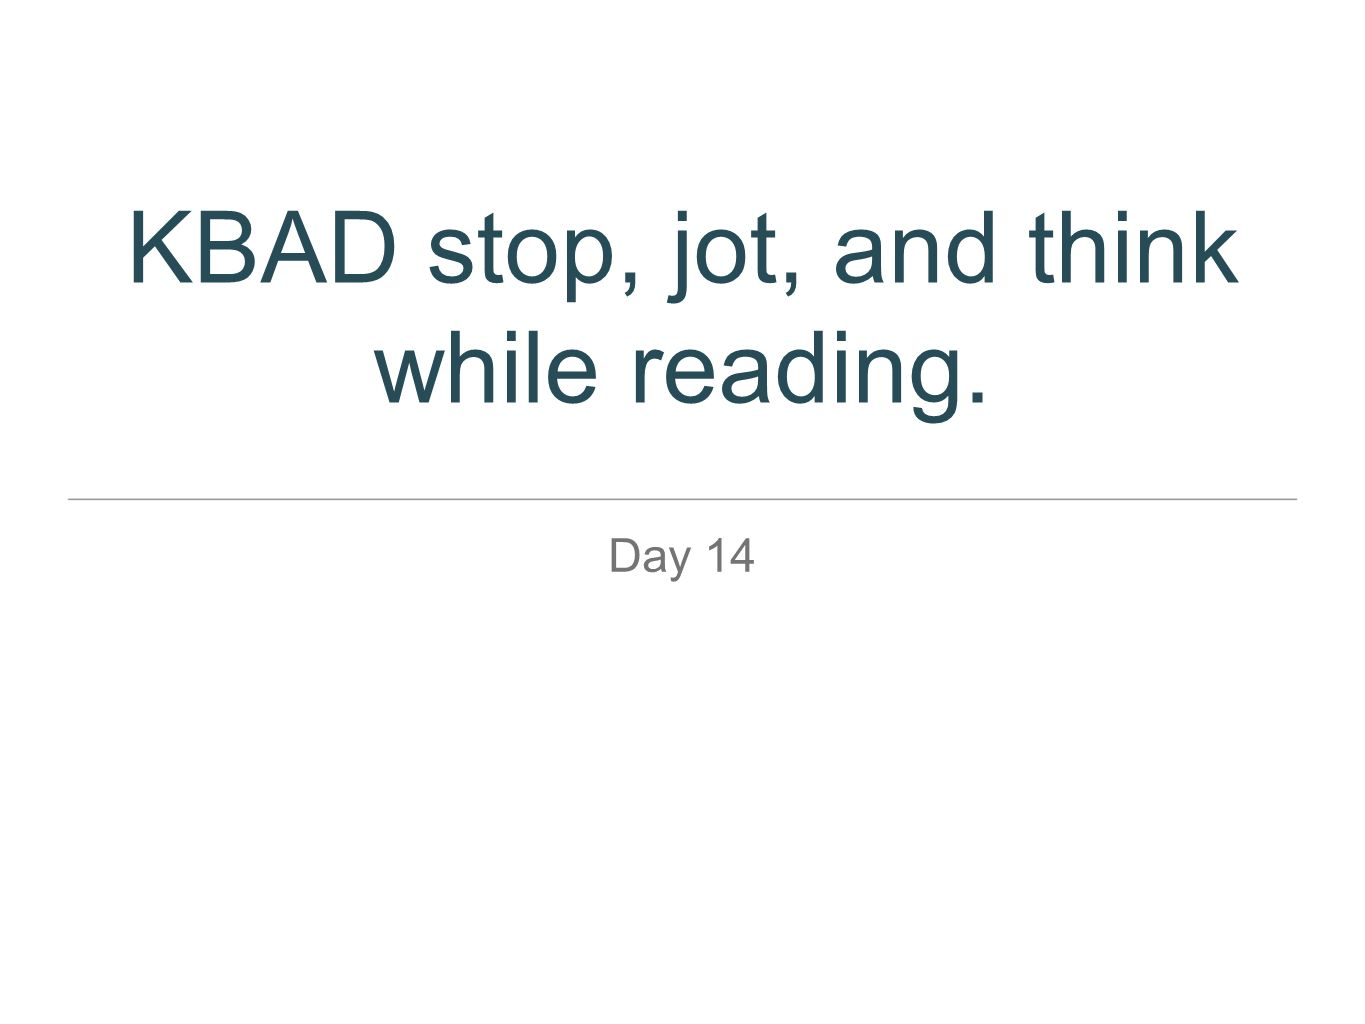 KBAD stop, jot, and think while reading.